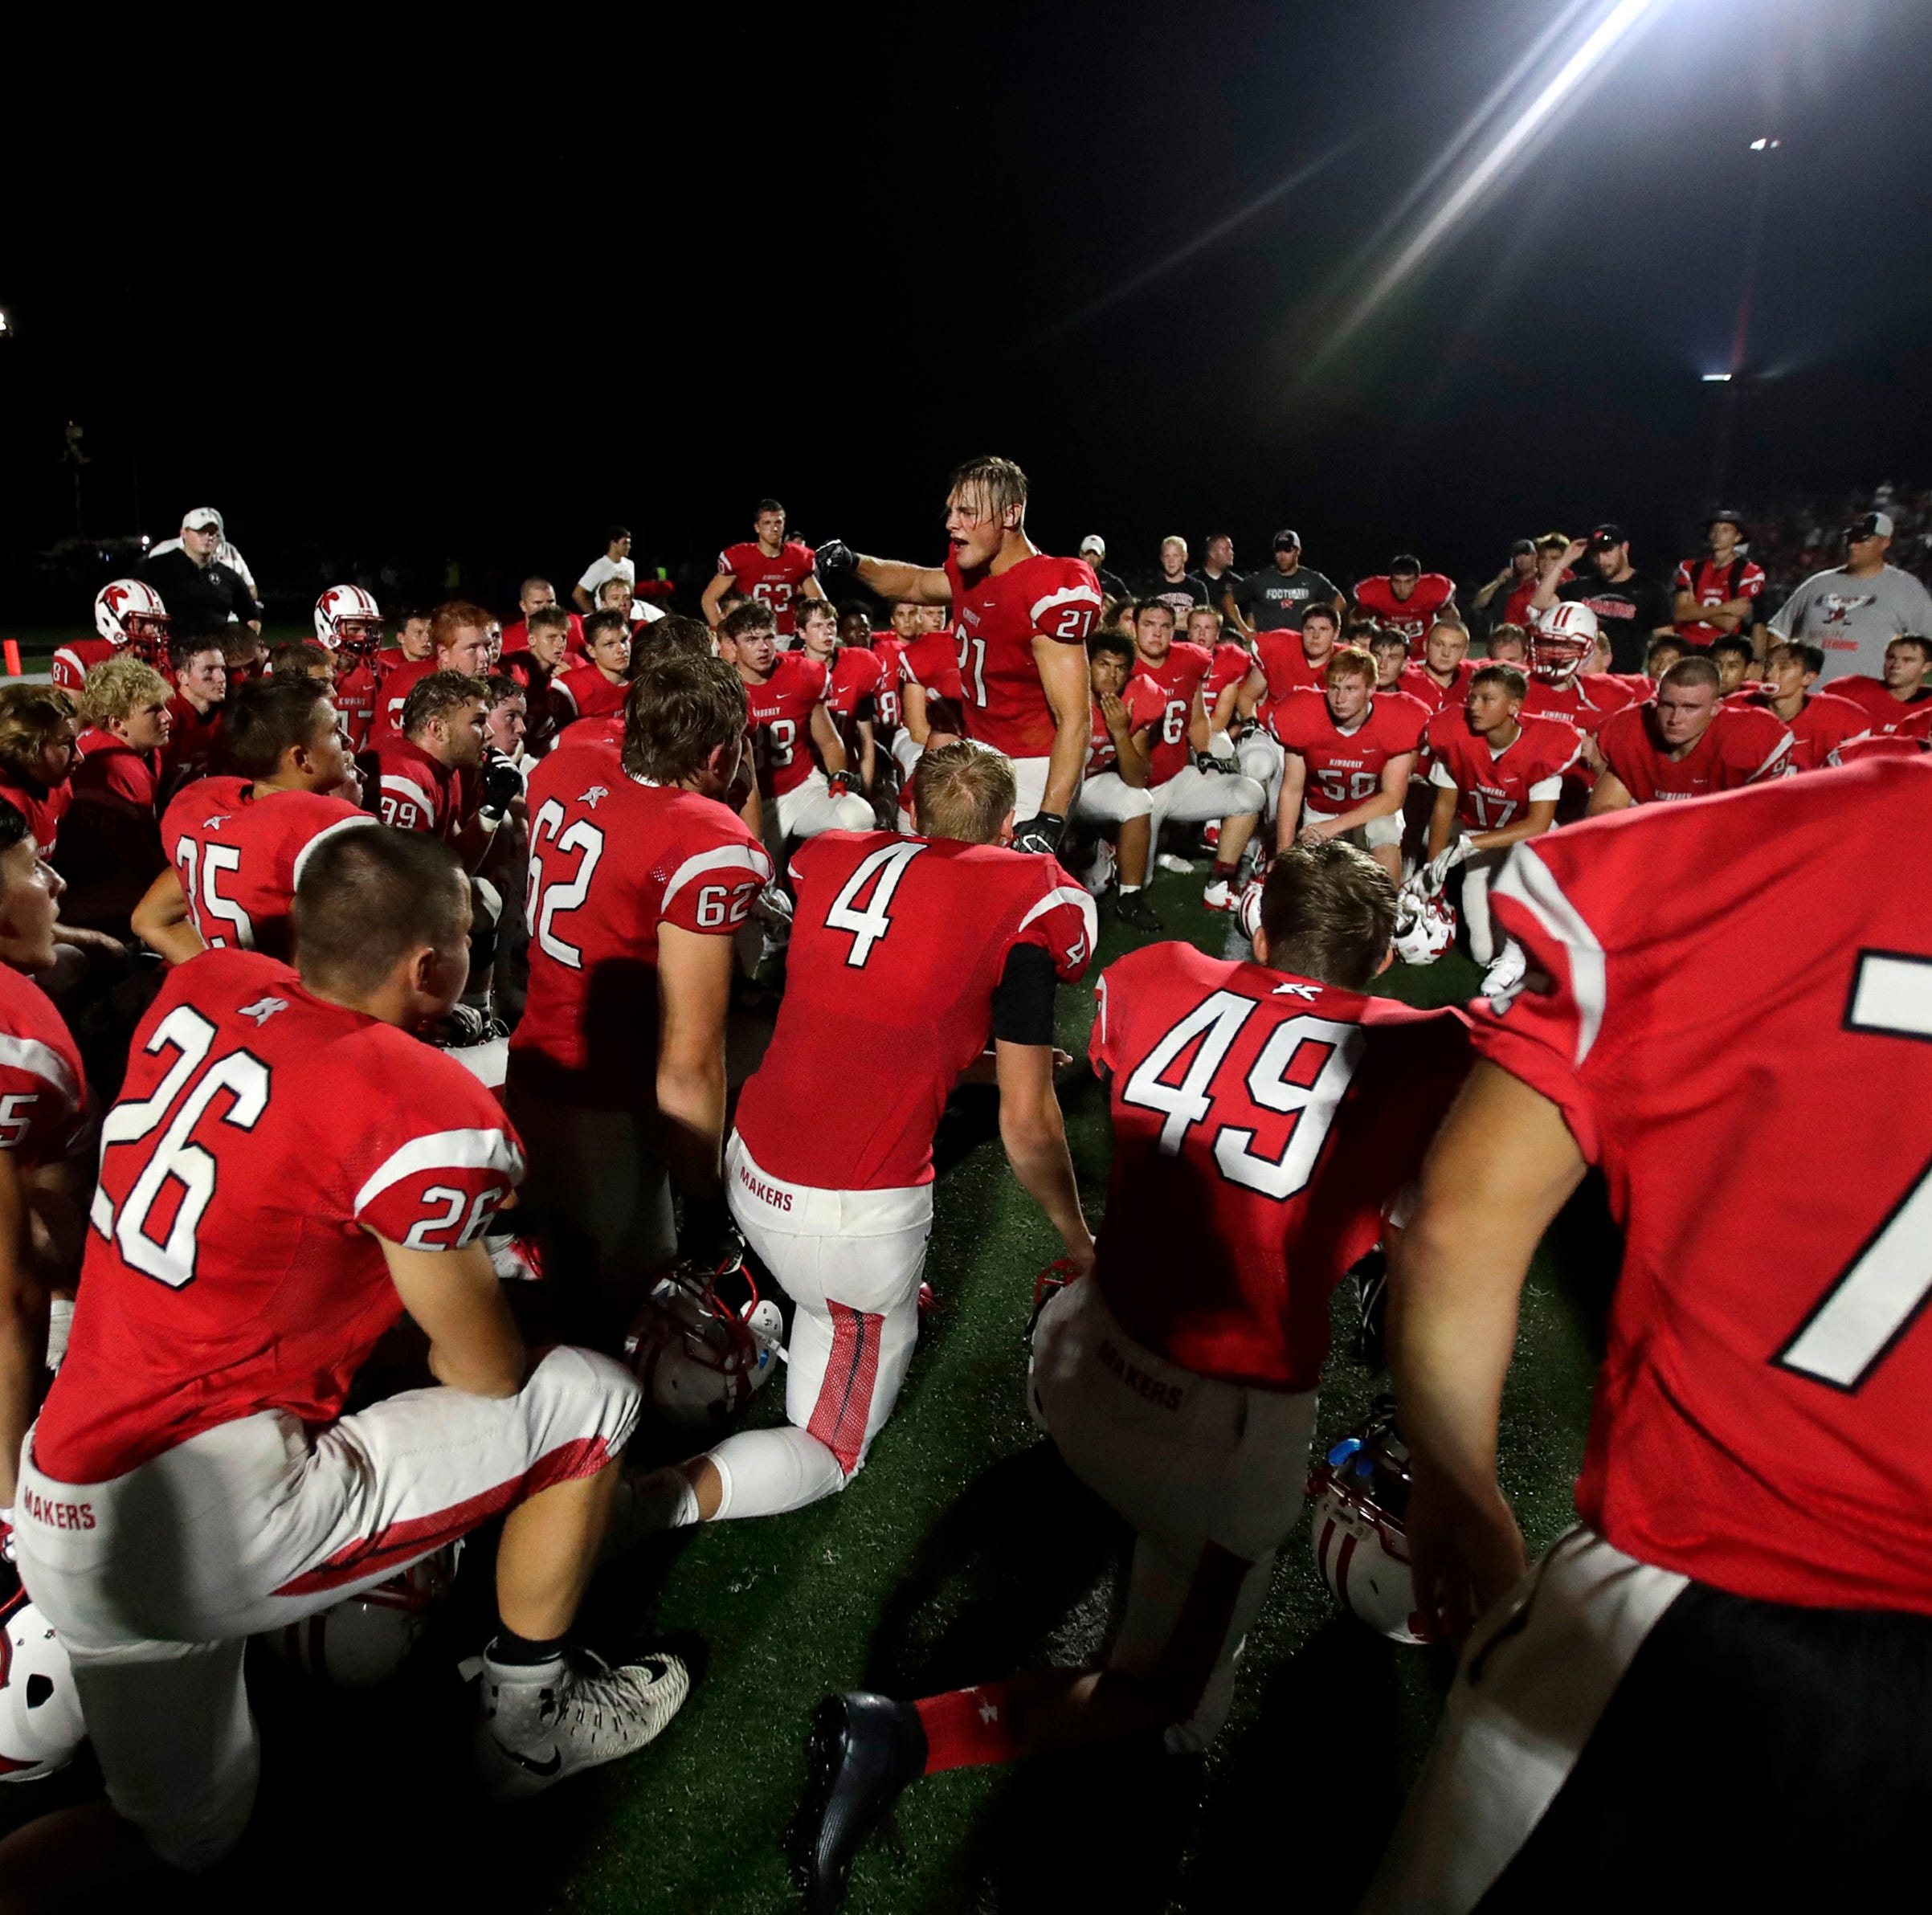 High school football: The streak is over, but what a wonderful ride it was